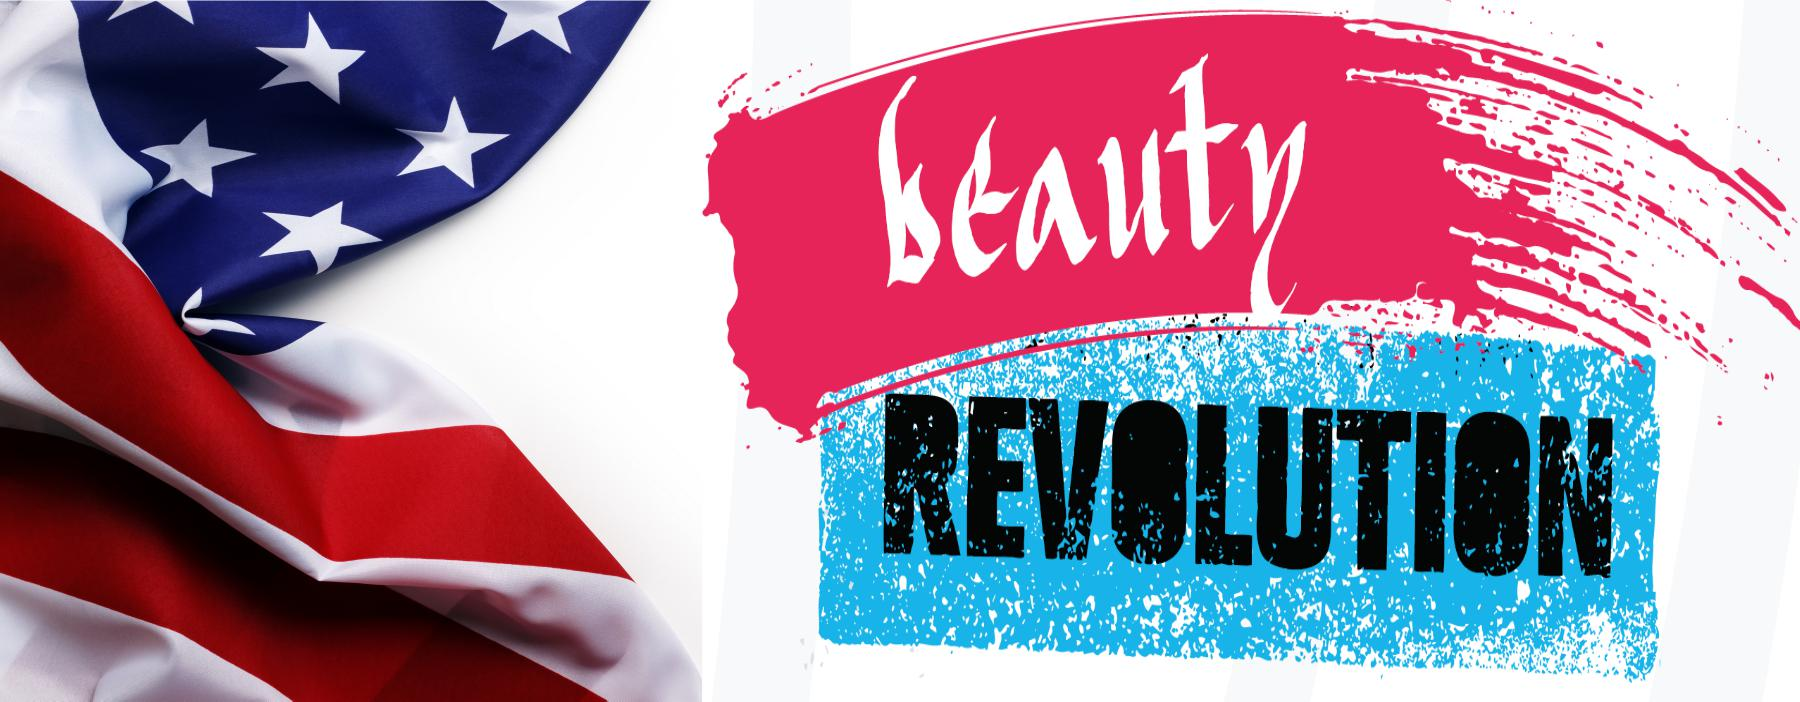 beauty-revolution-slider-page